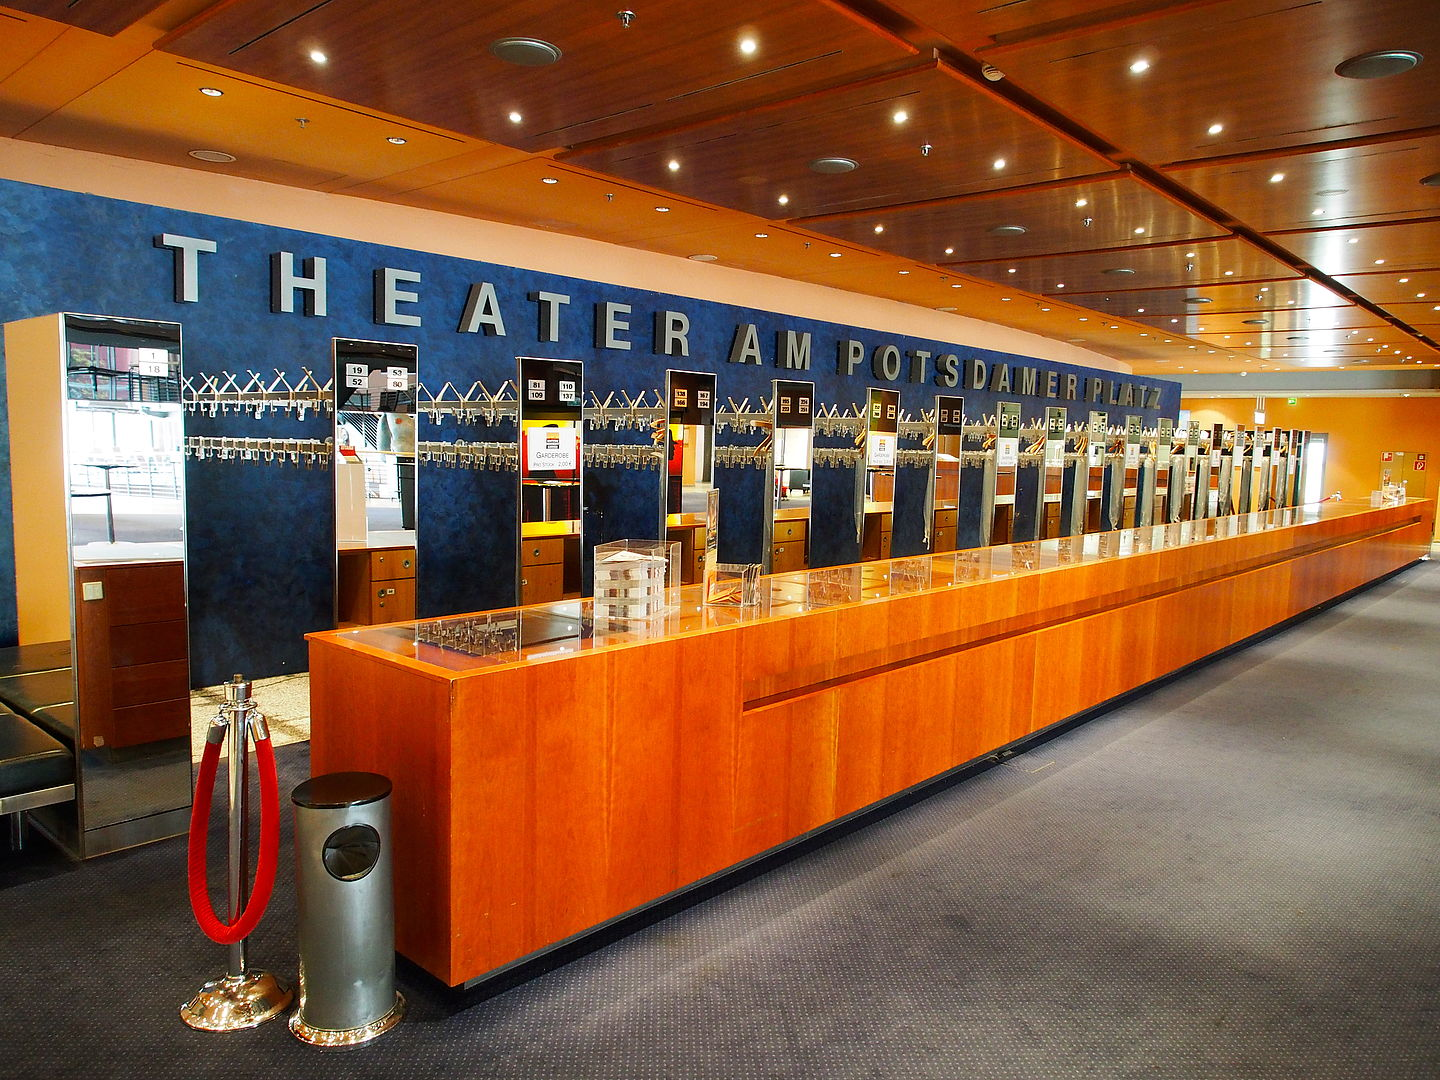 Garderobe In Theater.Stage Theater Am Potsdamer Platz Up To 500 Persons Fiylo